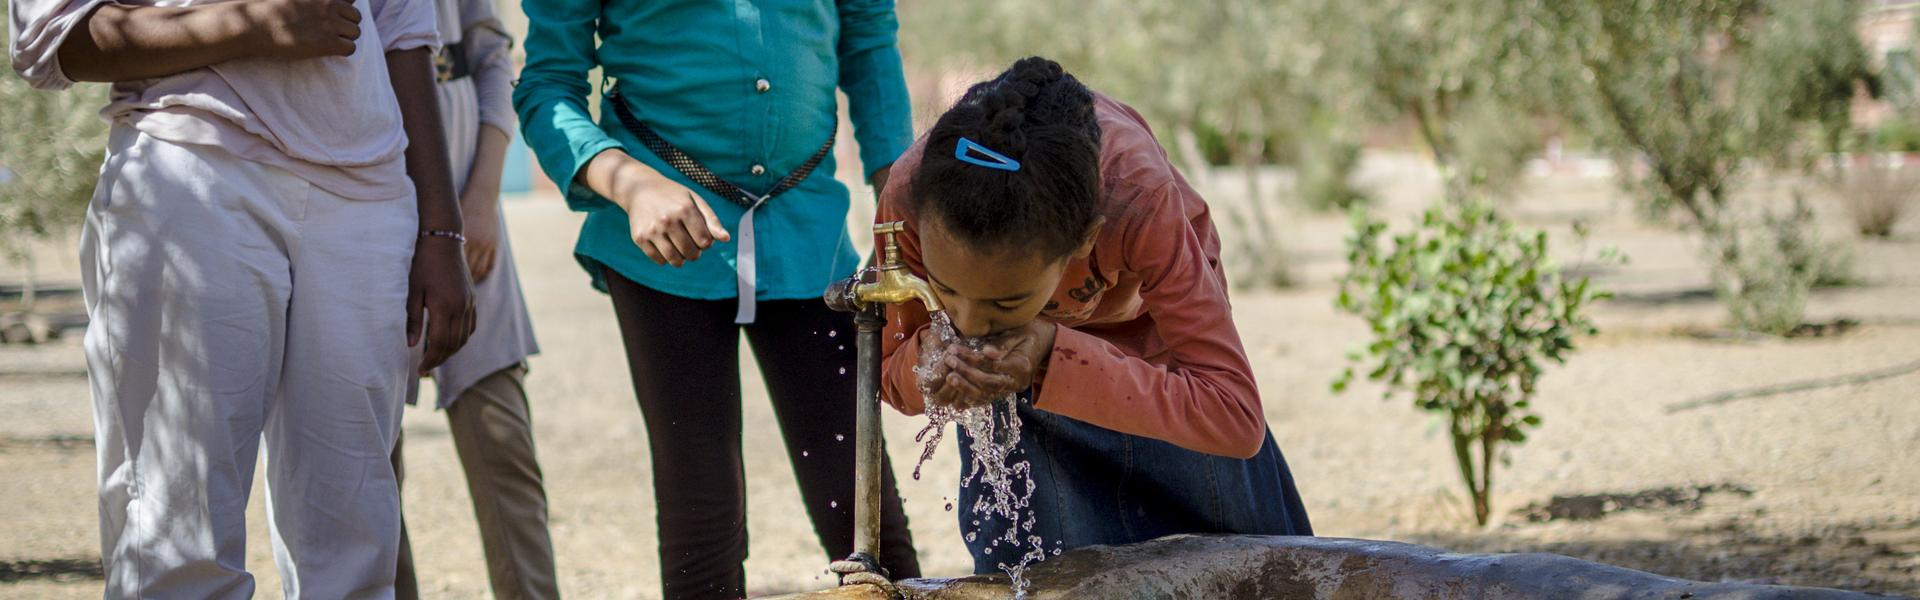 girl drinking water morocco